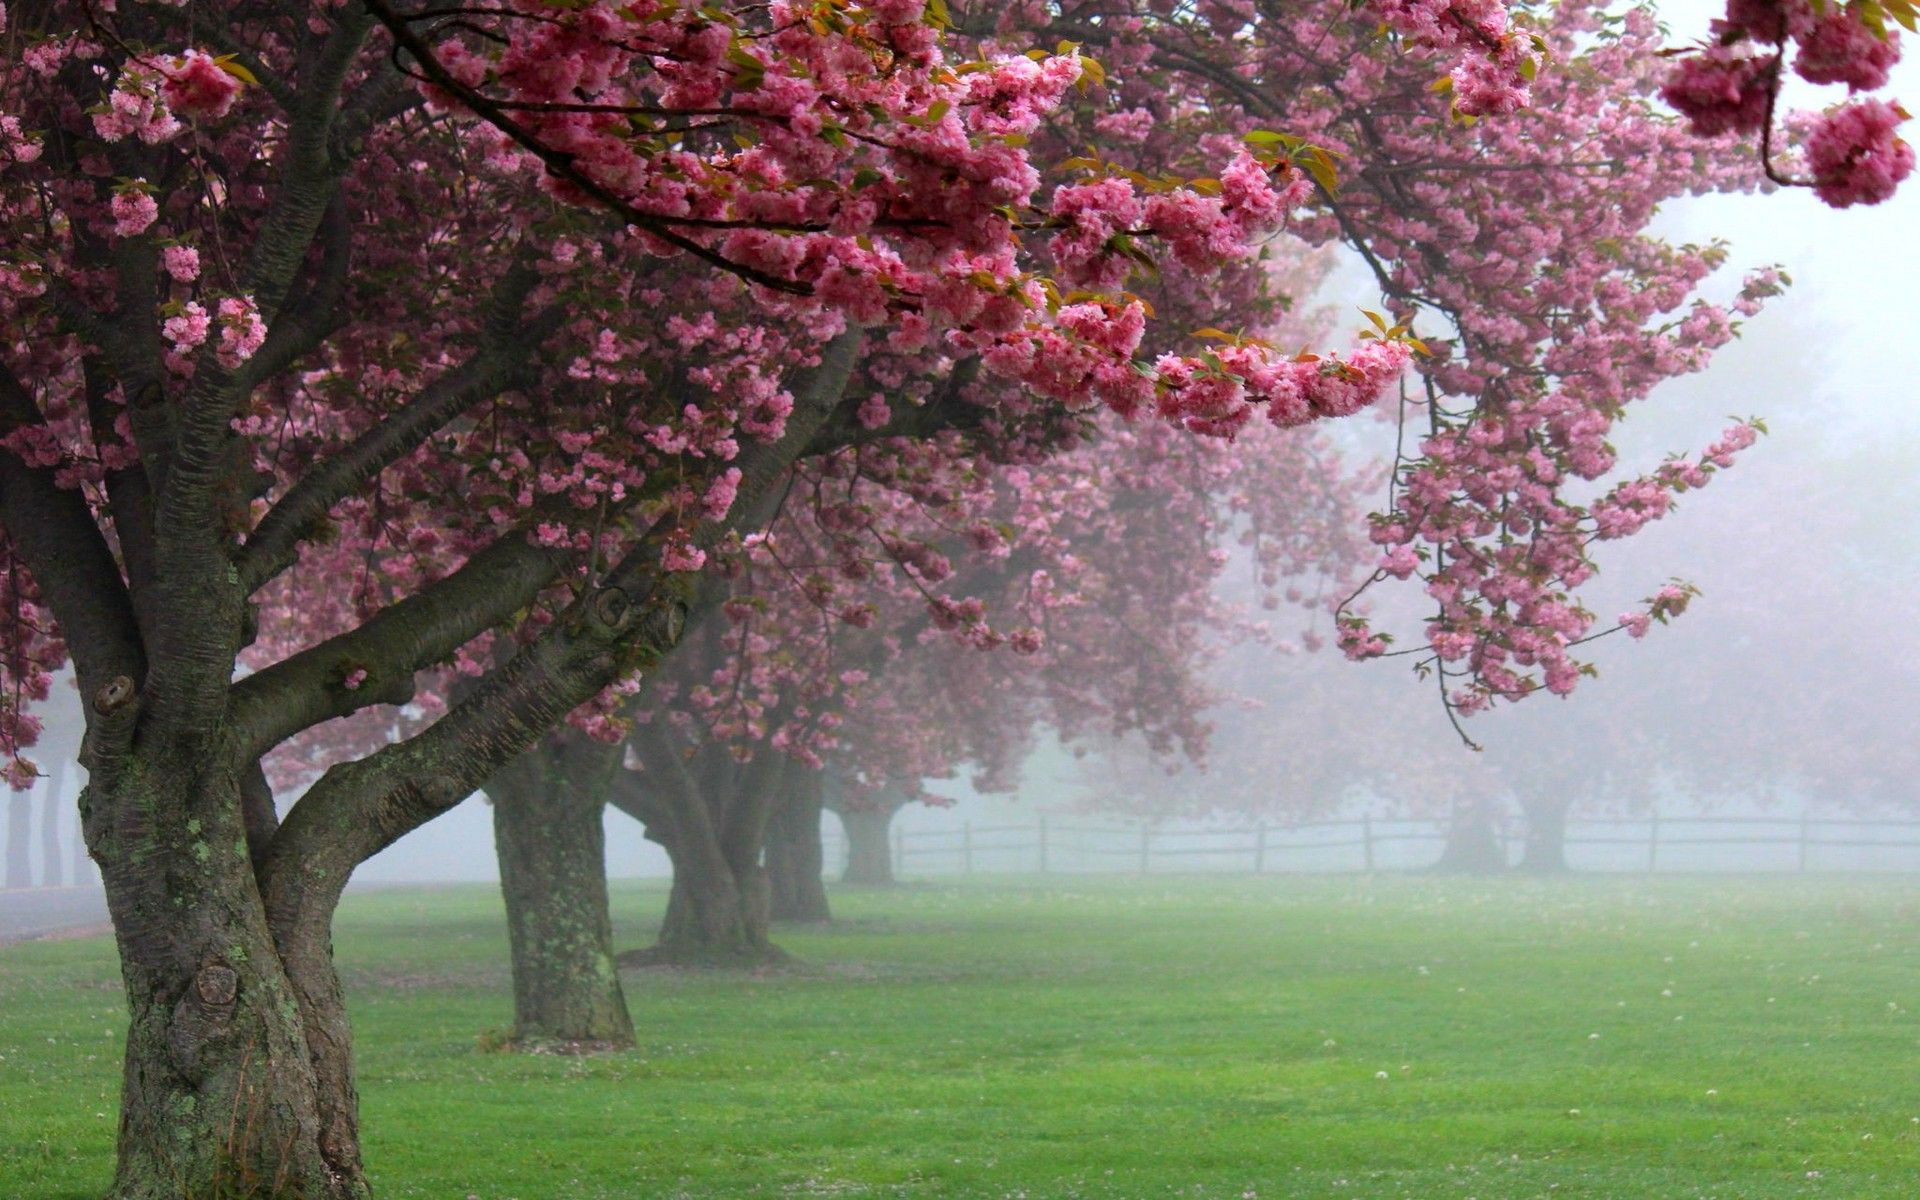 Nature Landscape Cherry Trees Mist Pink Flowers Spring Sunrise Grass Blossom Fence Green Wallpaper Pink Flowering Trees Blossom Trees Cherry Tree